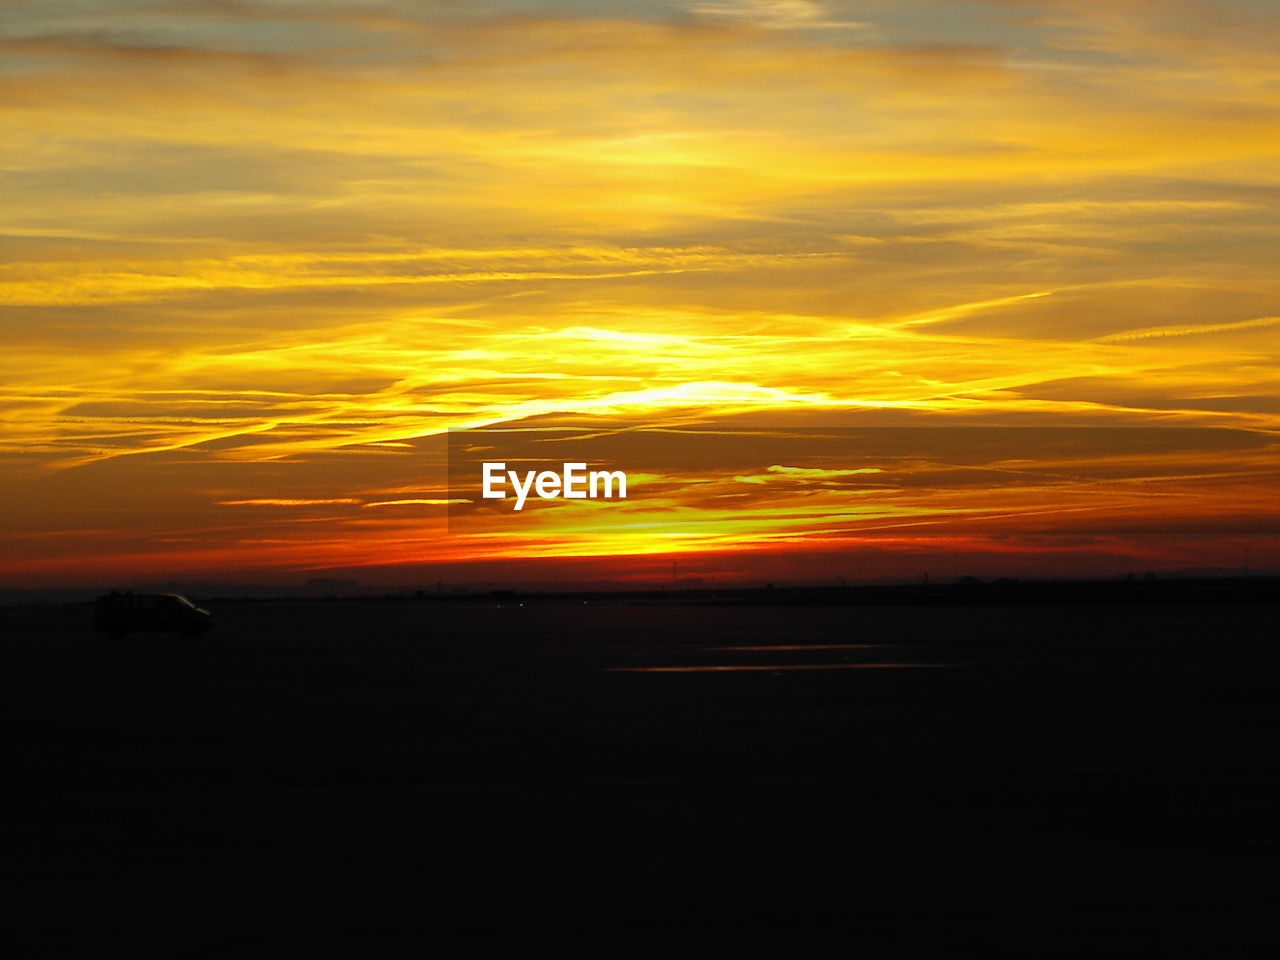 sunset, sky, cloud - sky, orange color, beauty in nature, scenics - nature, silhouette, tranquil scene, tranquility, no people, nature, environment, idyllic, landscape, dramatic sky, yellow, land, outdoors, field, horizon